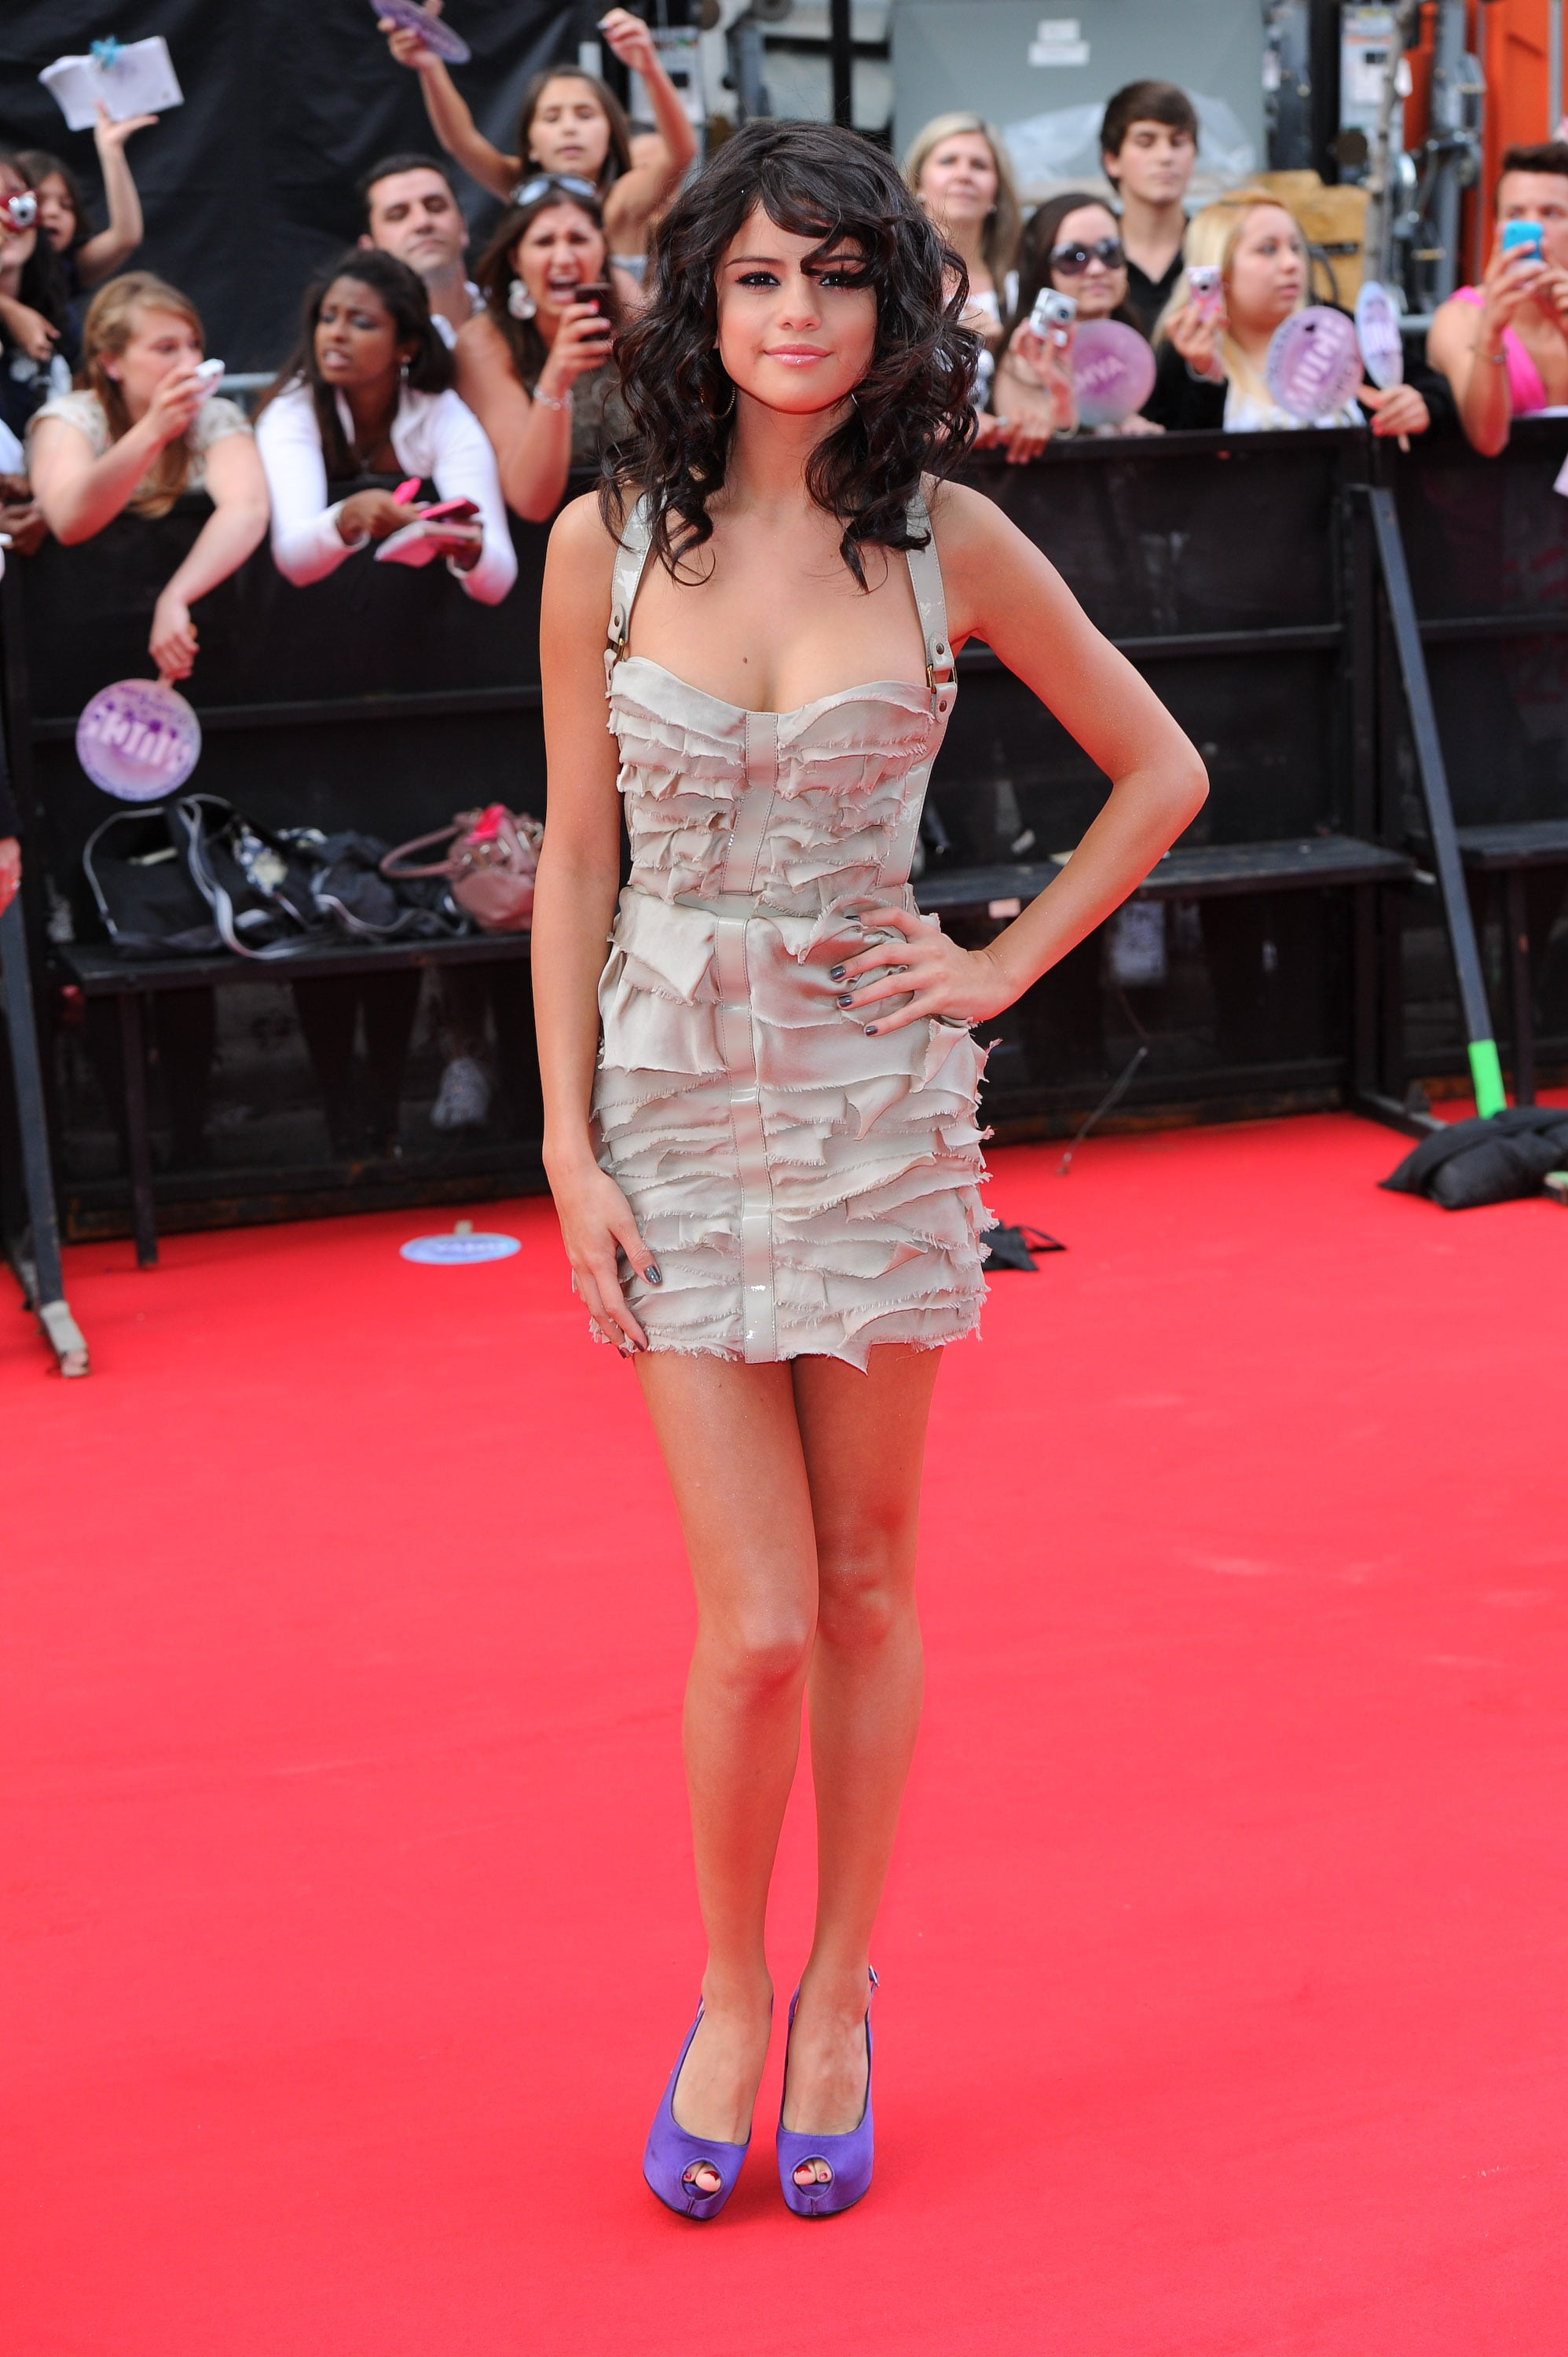 Selena opted for a tiered, ruffled Burberry dress and purple heels at the MuchMusic Video Awards in 2011.